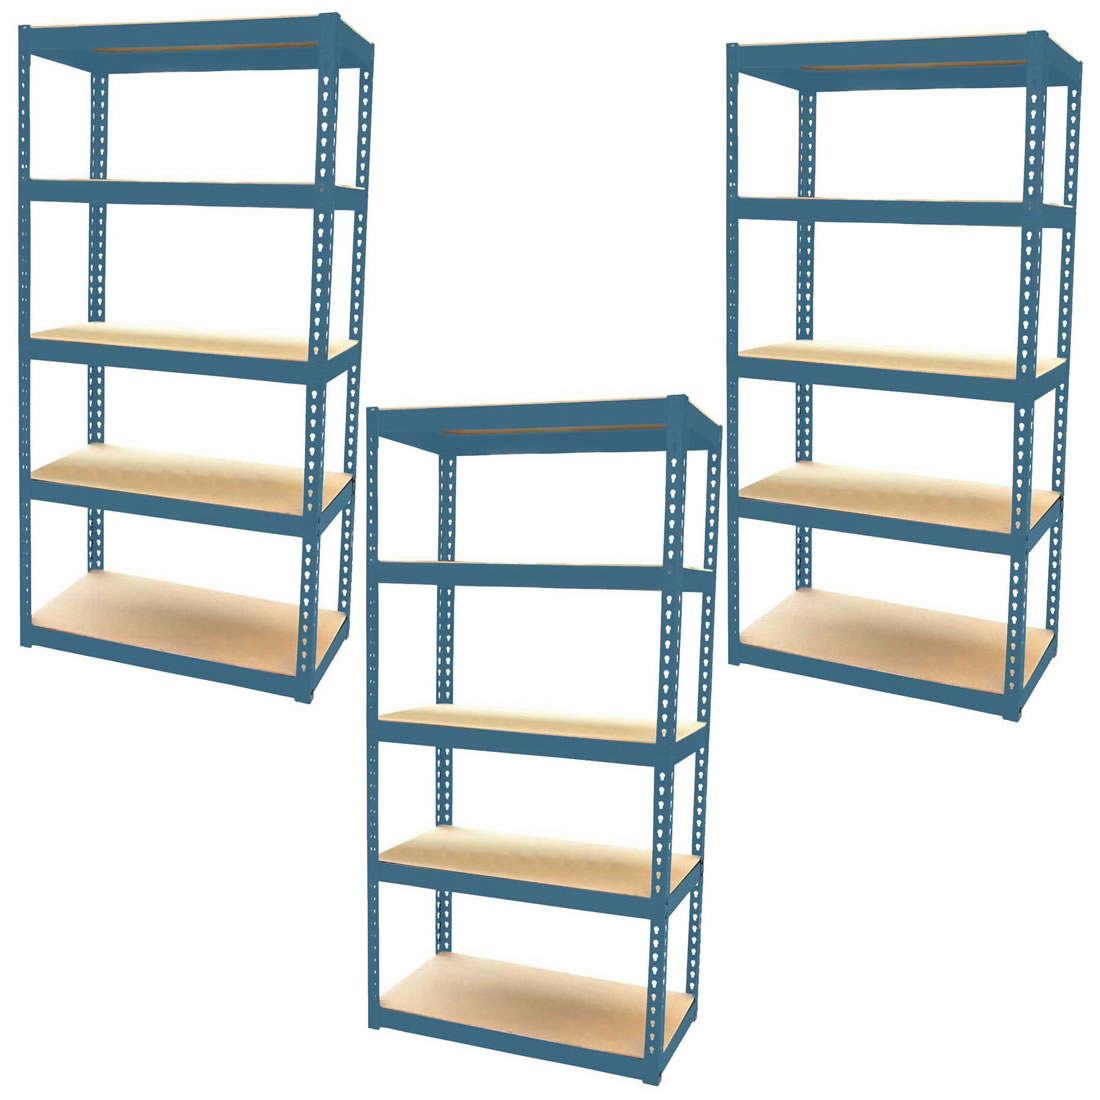 3 bay shelving unit heavy duty 5 tier shelf steel racking. Black Bedroom Furniture Sets. Home Design Ideas